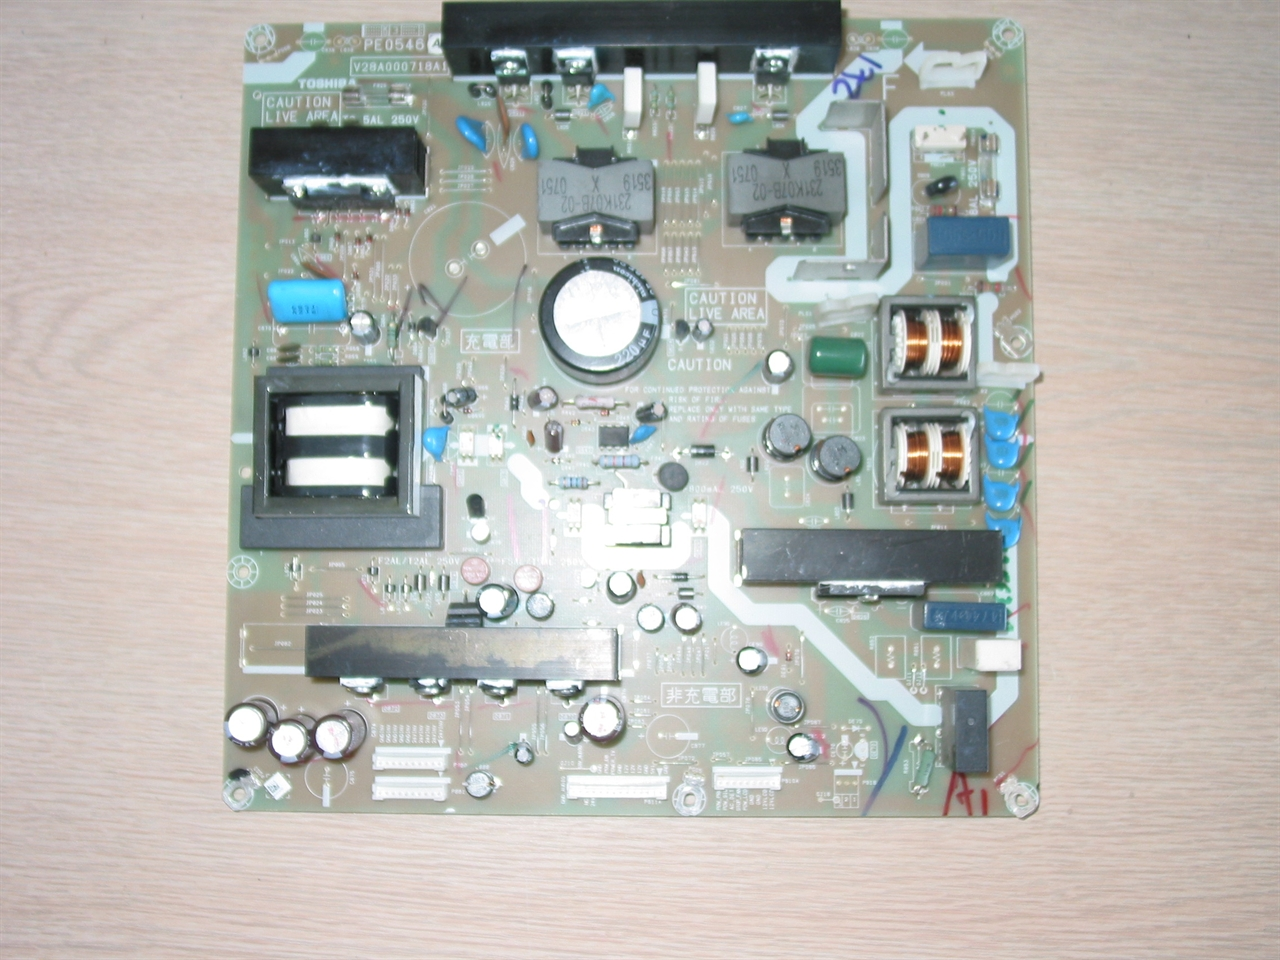 Picture of Repair service for Toshiba 42RV535U power supply board - dead TV  or clicking on